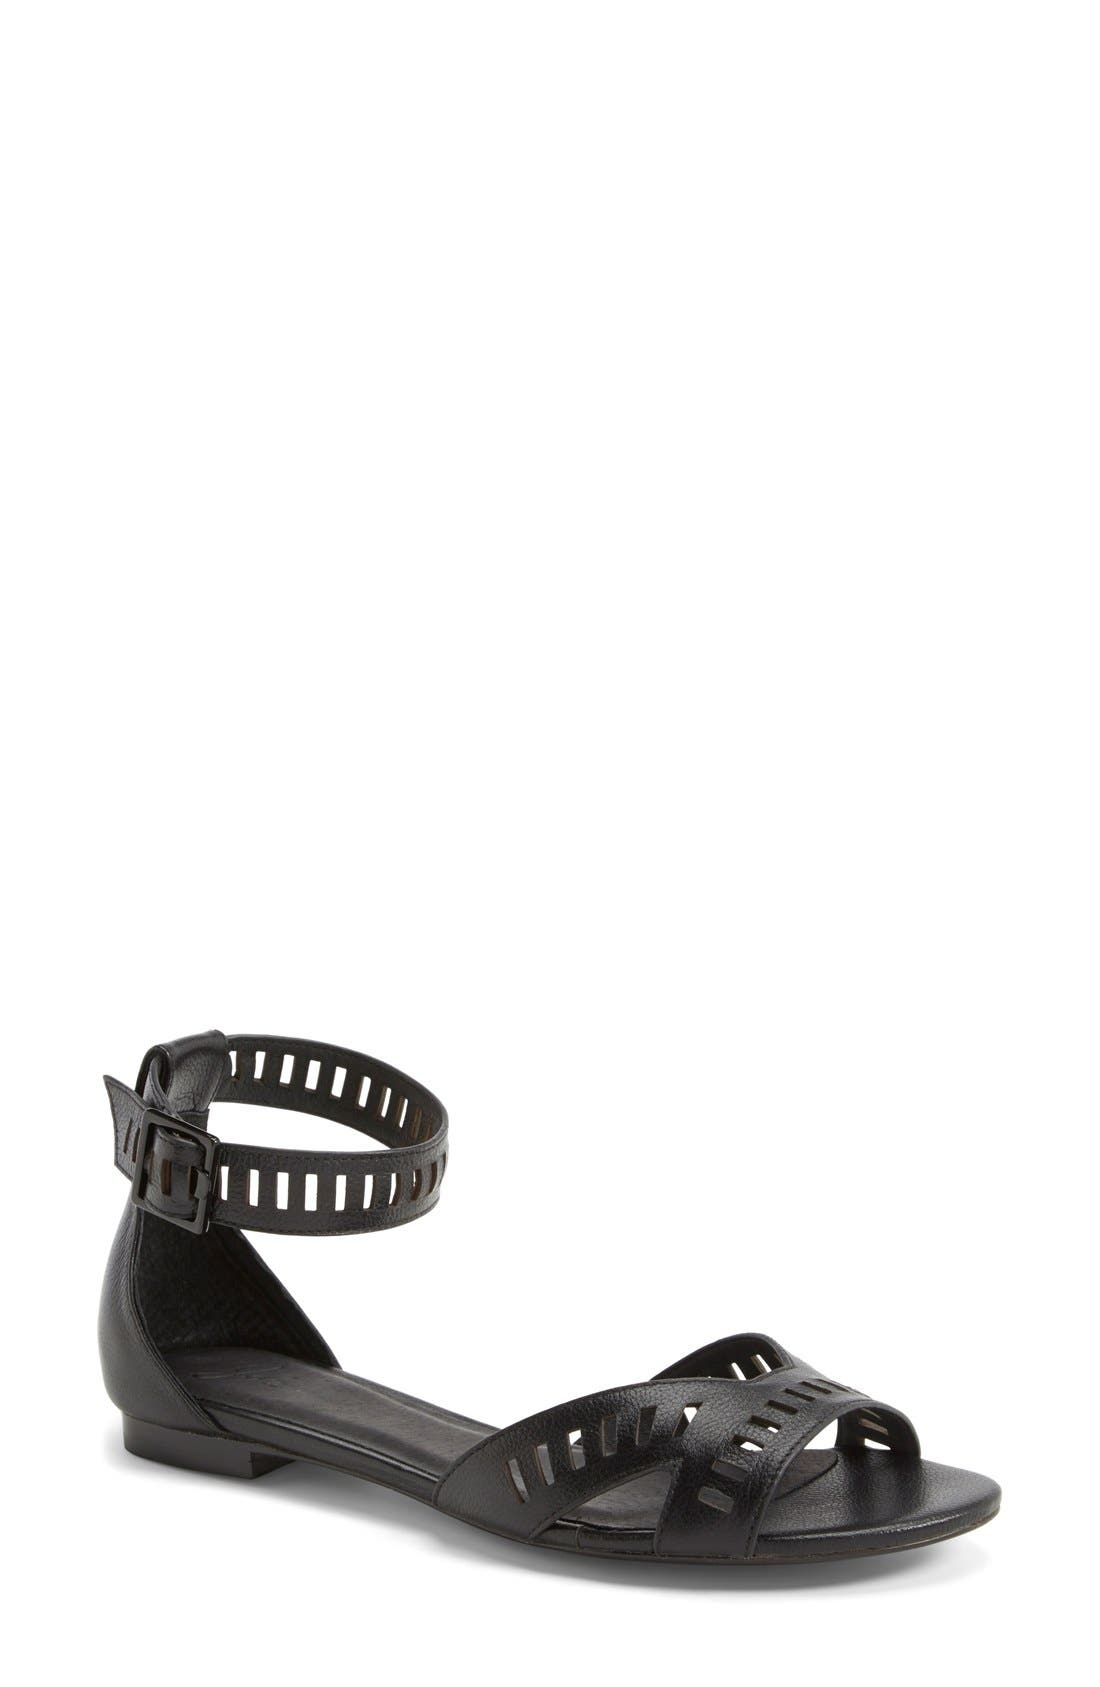 JOIE 'Luca' Leather Sandal, Main, color, 001